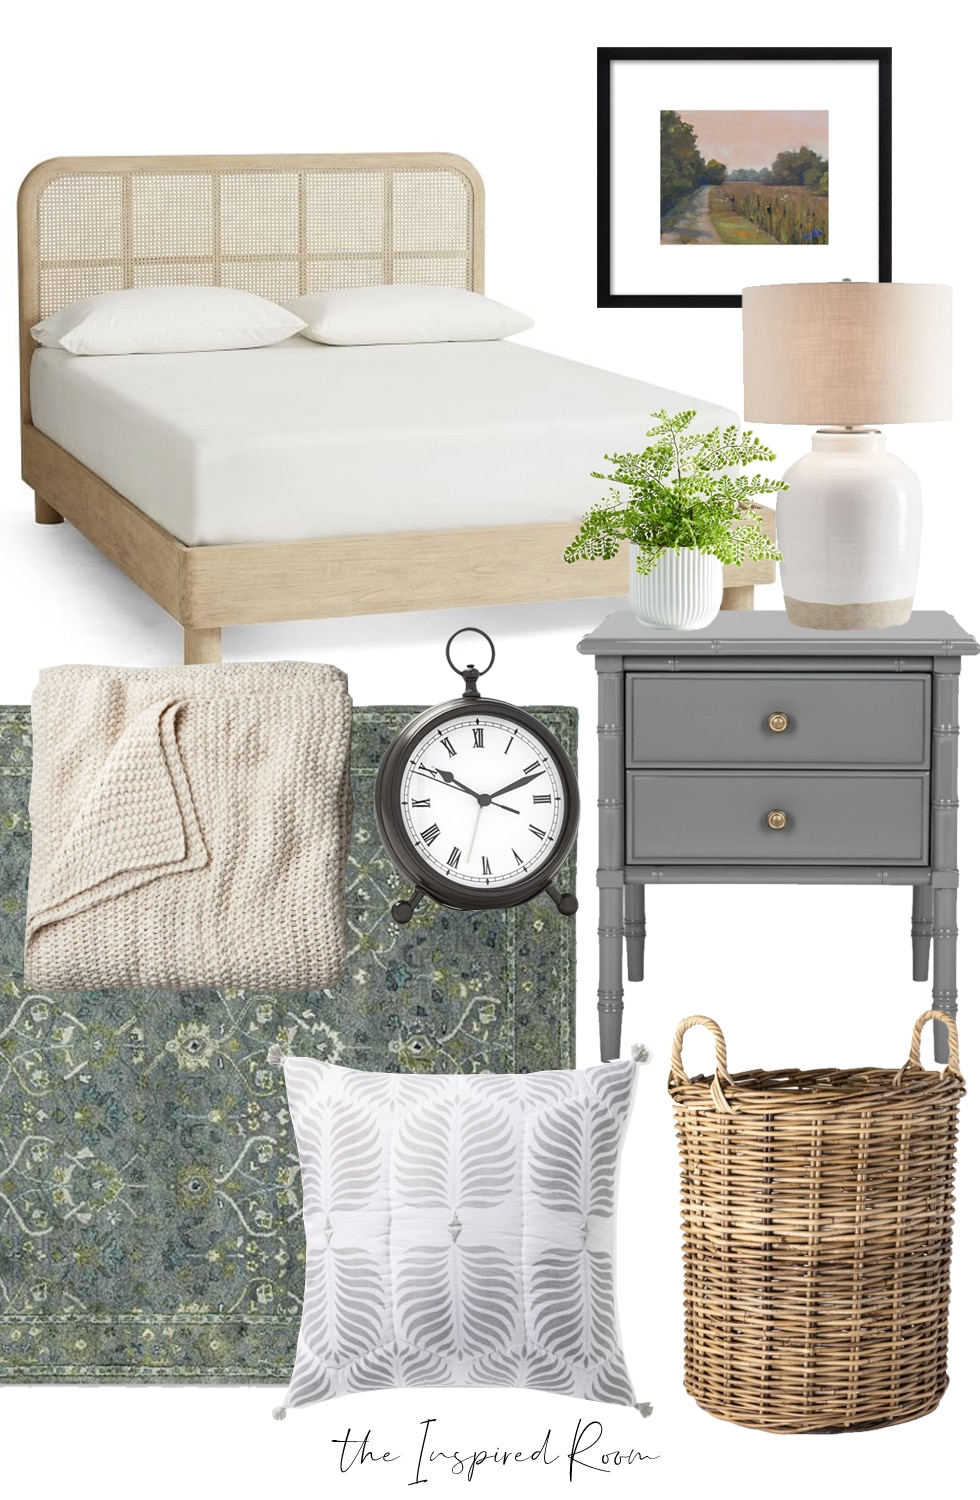 Bedroom Decorating Ideas + Mood Boards: One Cane Bed, 3 Ways